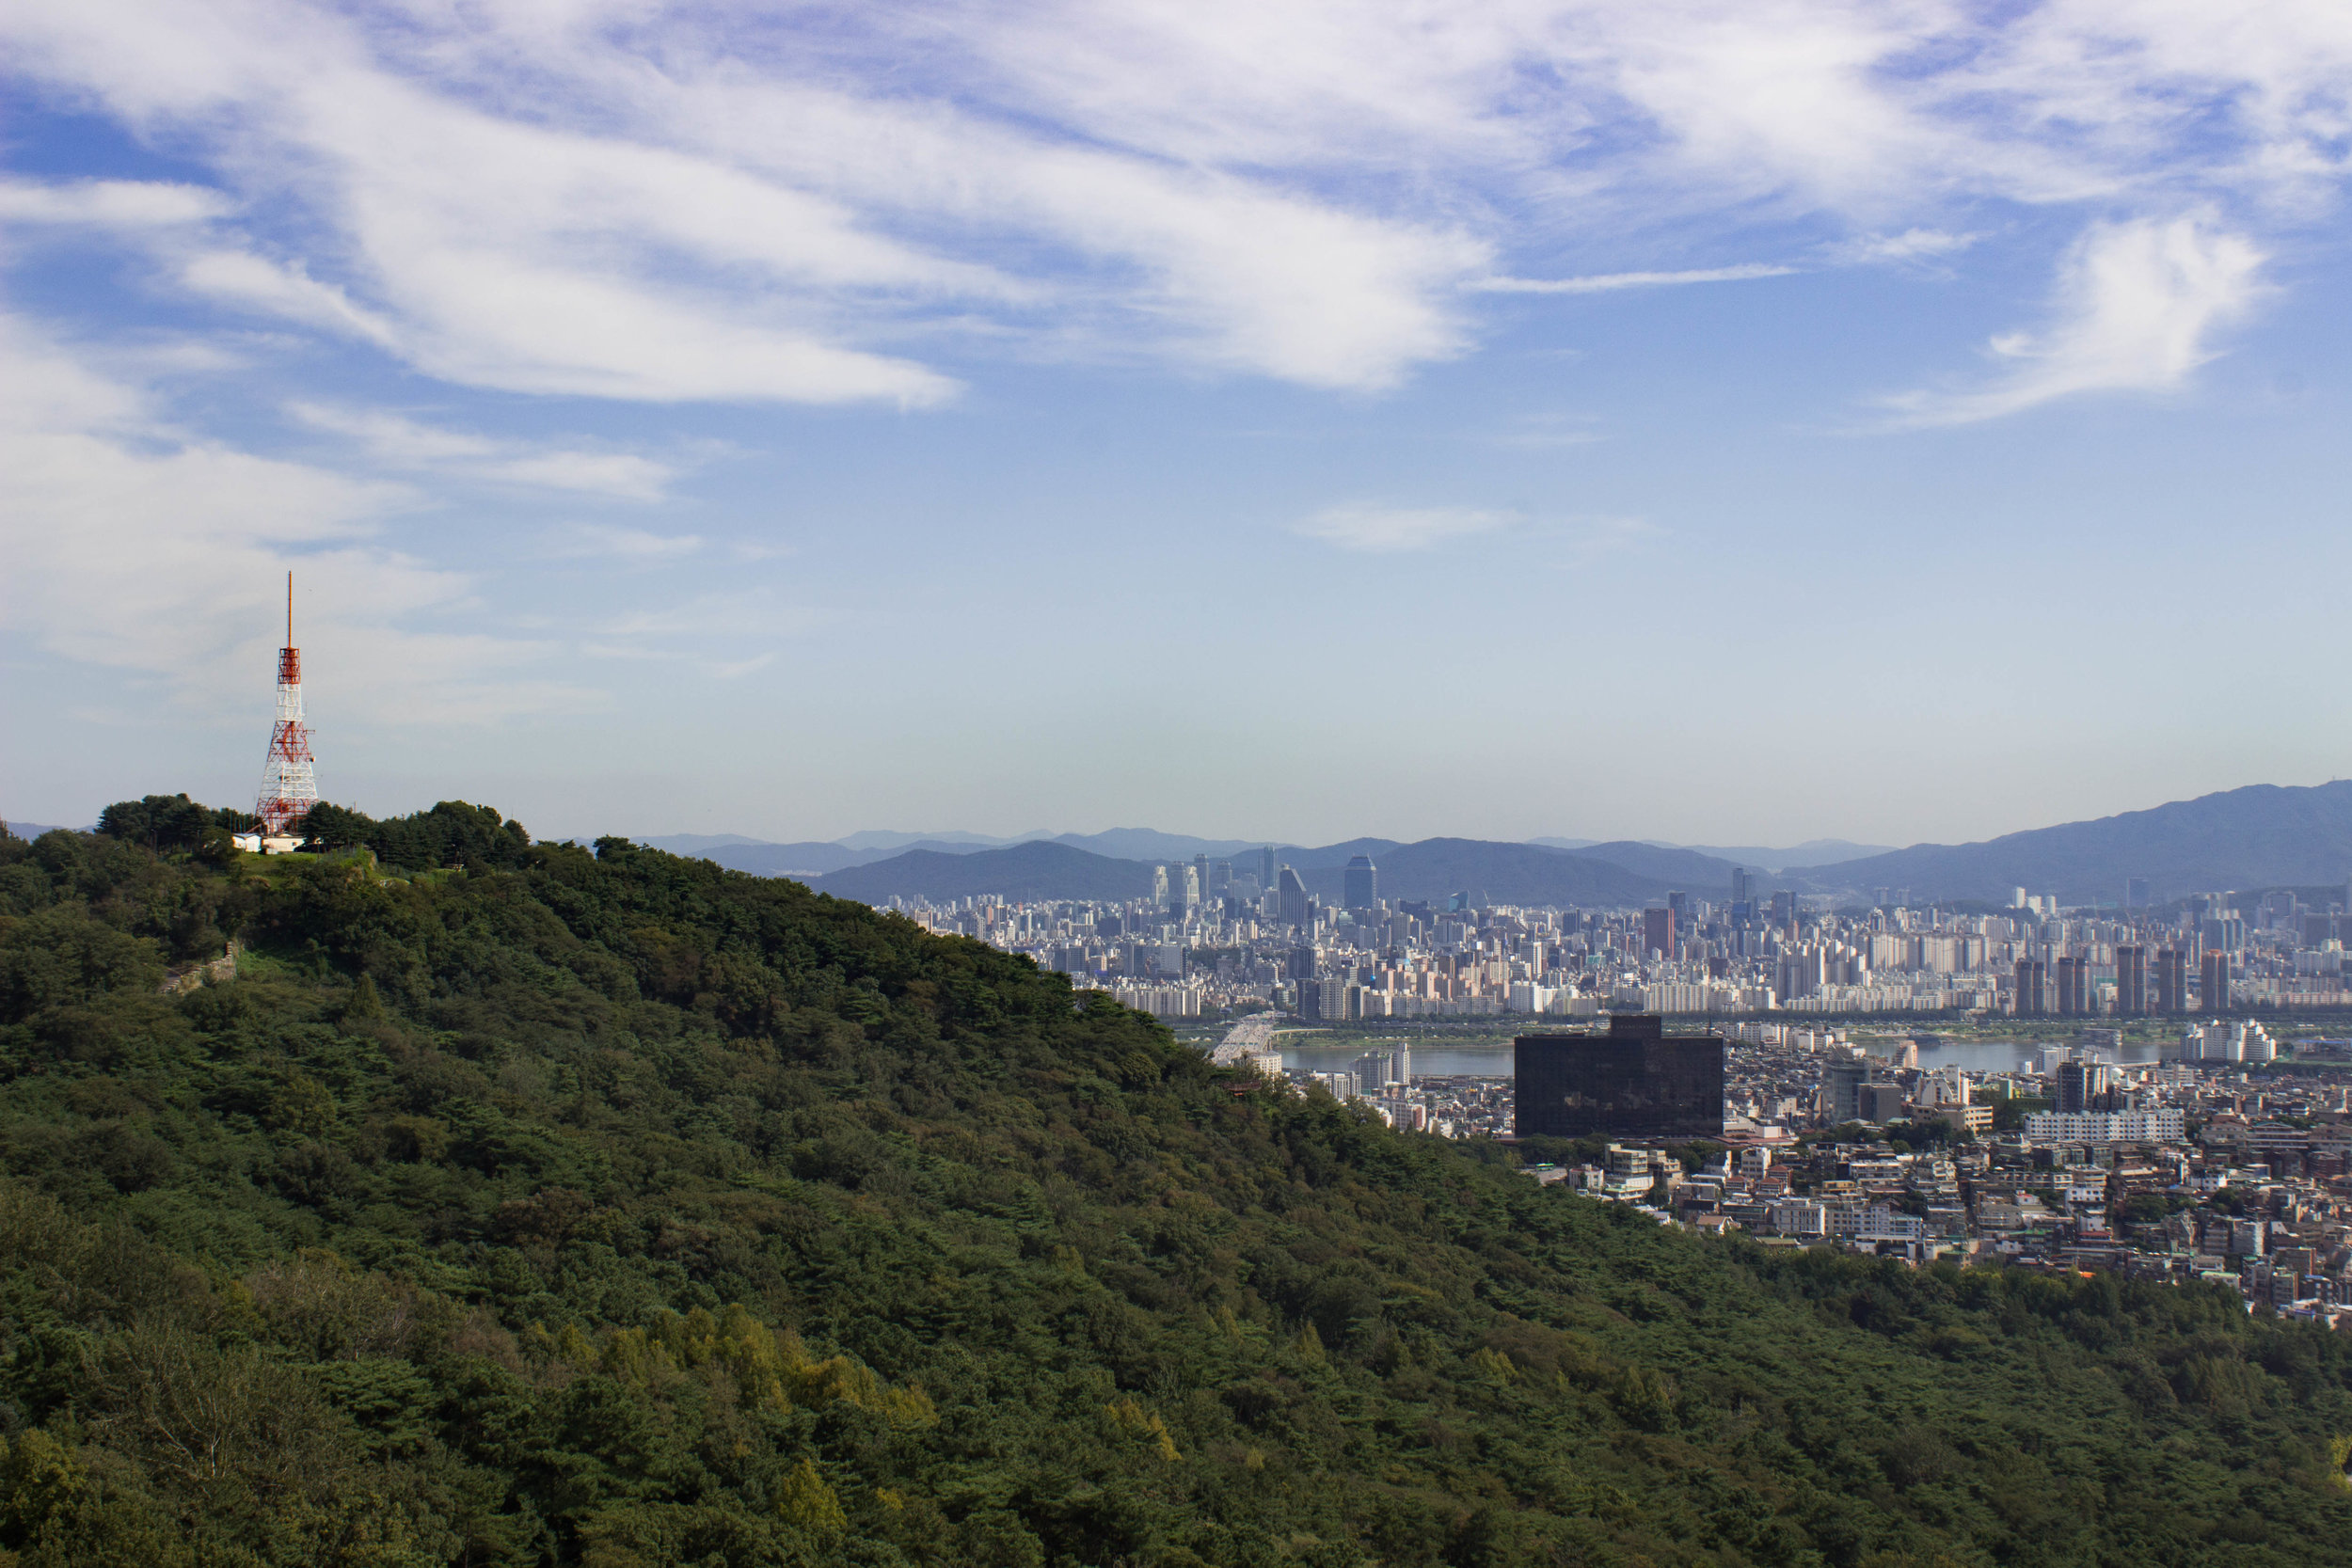 The view of Seoul from Namsan Seoul Tower